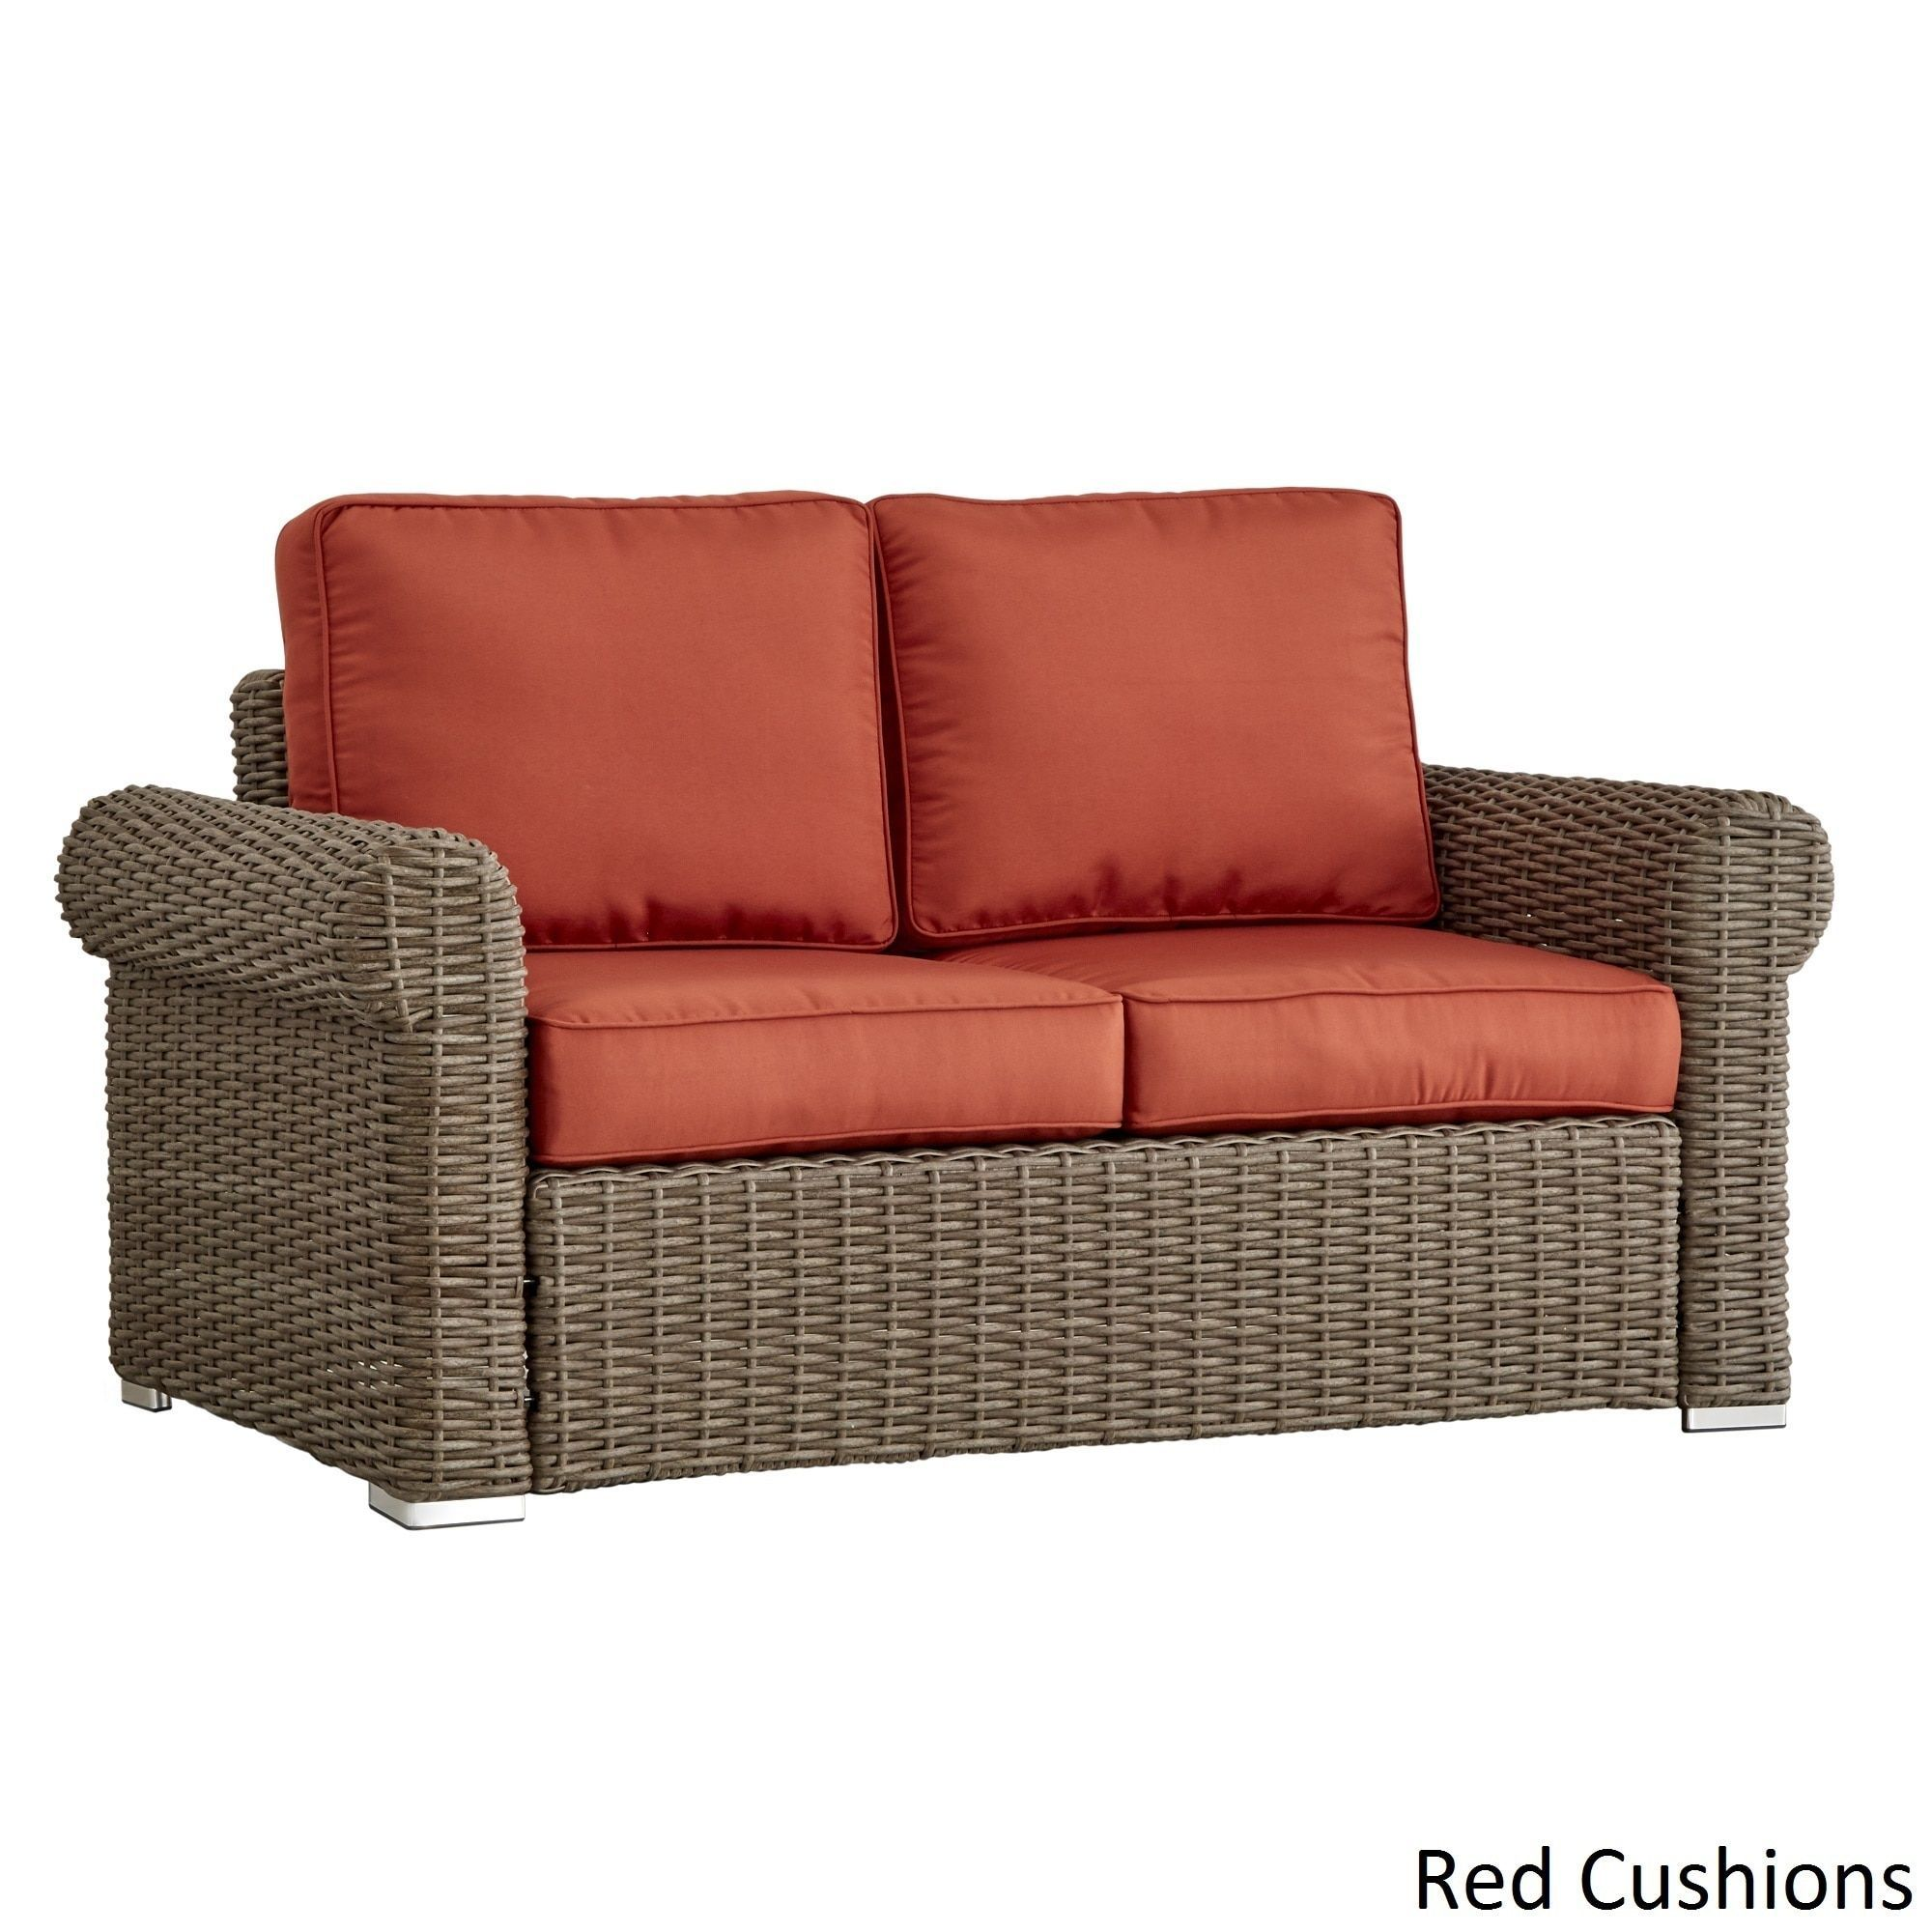 walmart loveseat for of on beds sleeper couch splitback full with size bed pull sofas sale sofa single set out